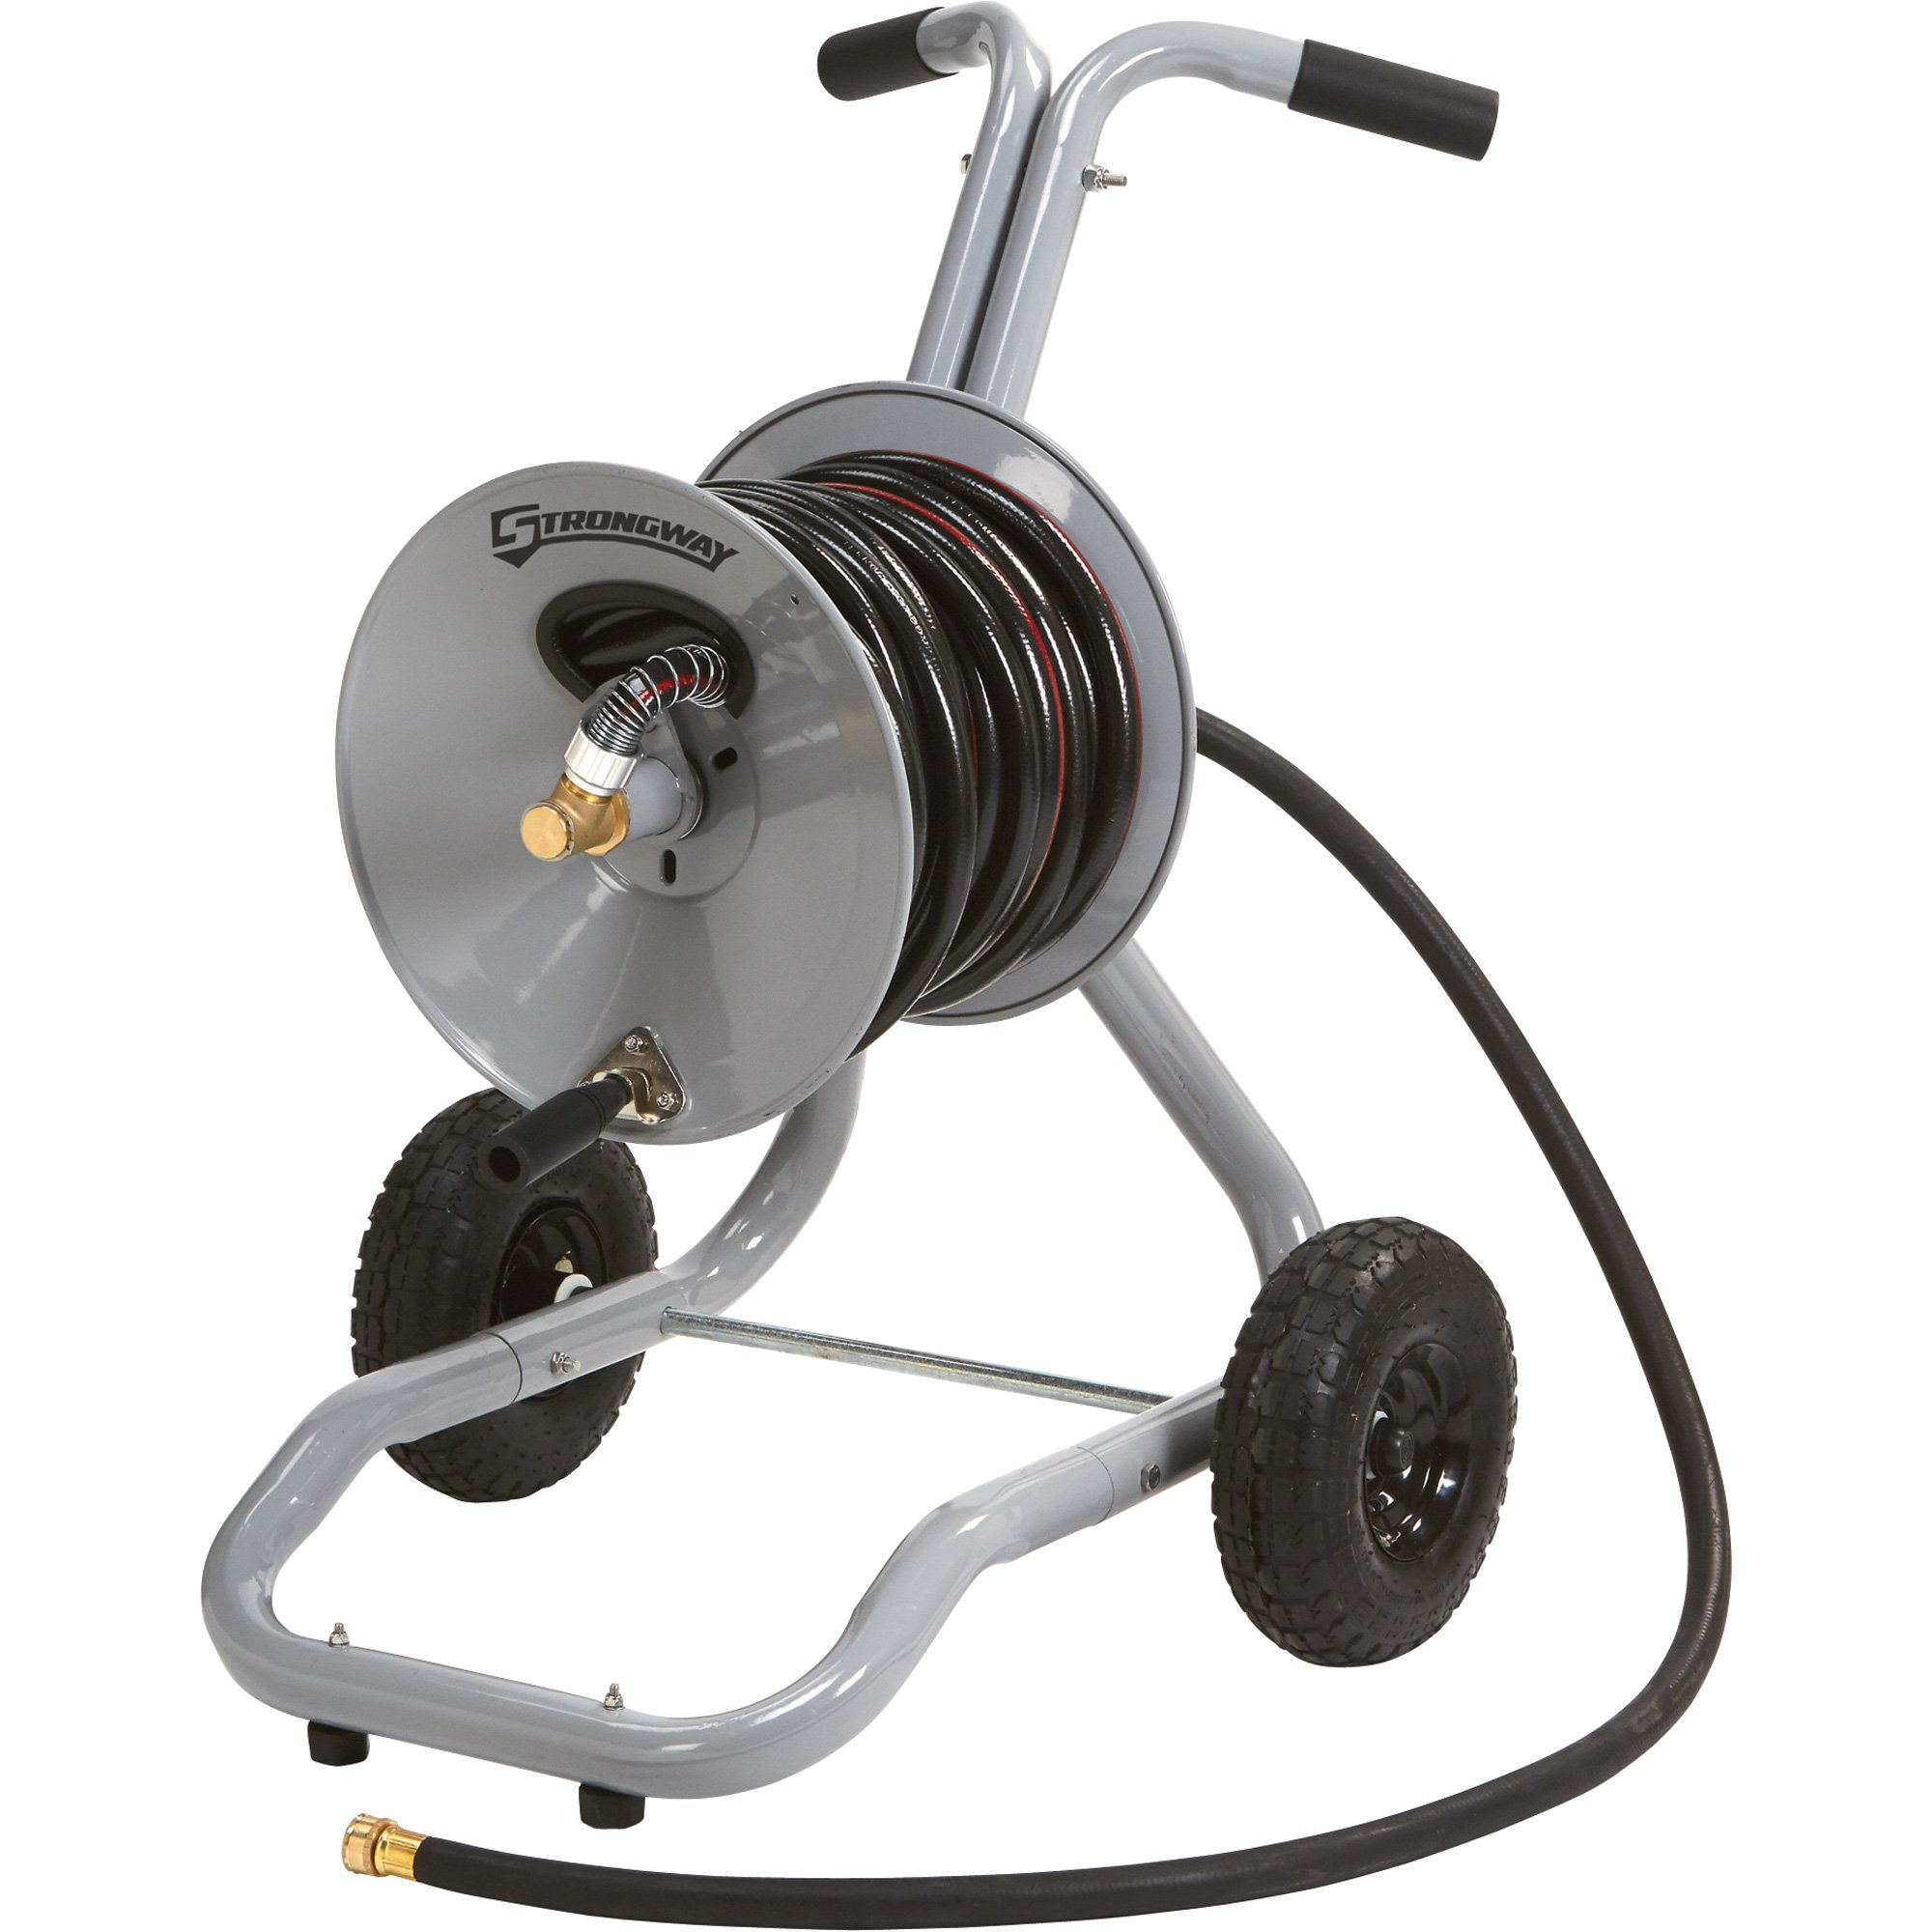 Strongway Garden Hose Reel Cart Holds 5 8in X 150ft